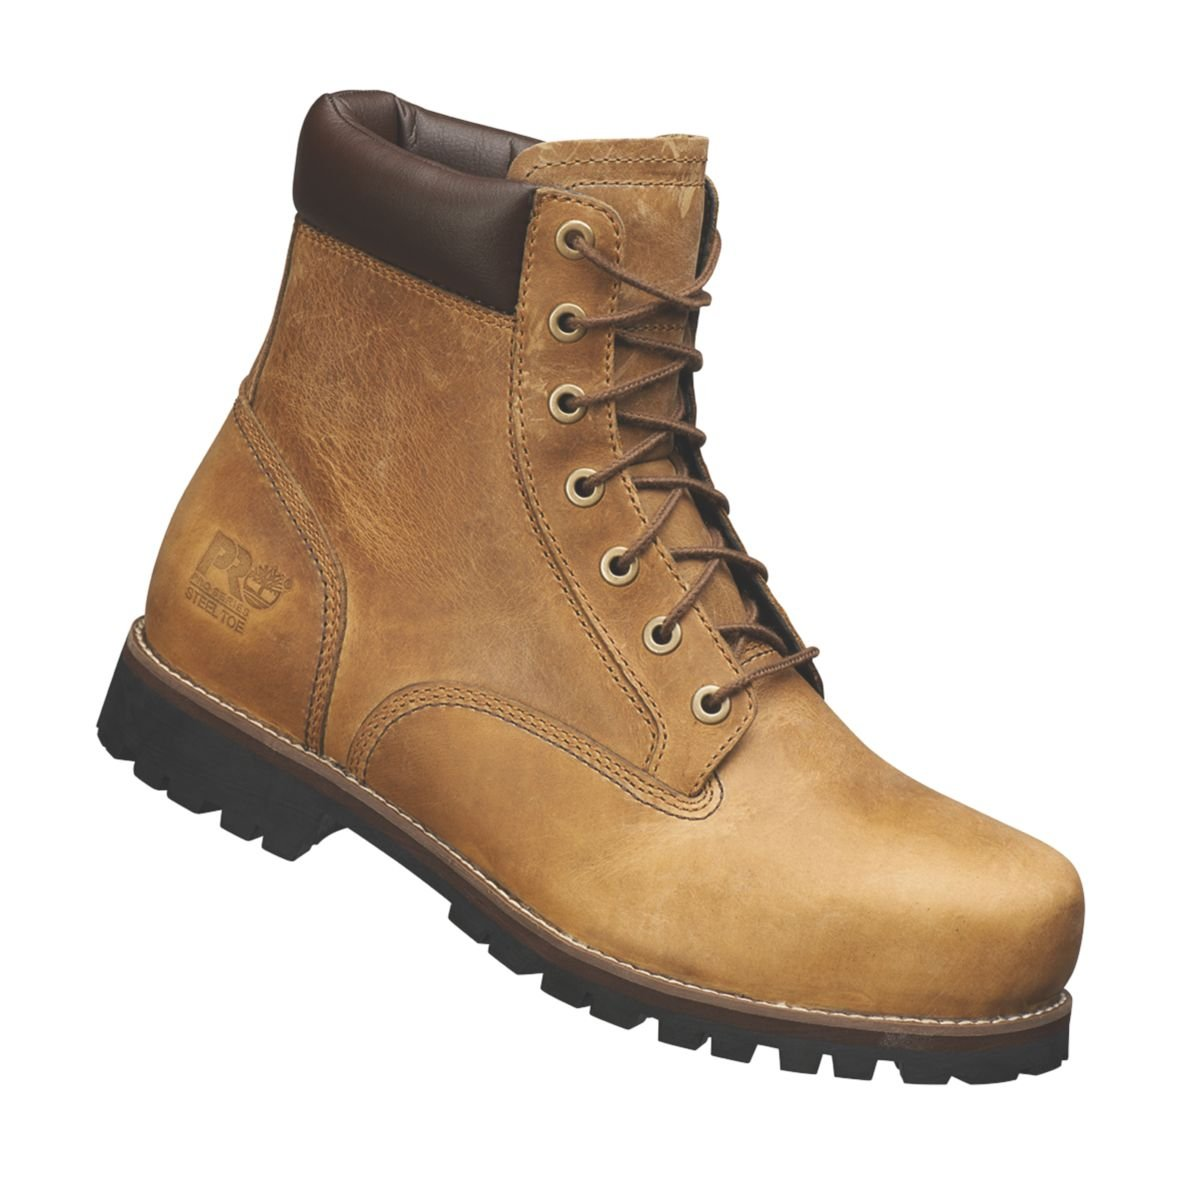 04a899c755a Timberland Pro Eagle Safety Boots Camel Size 11: Amazon.co.uk: DIY ...